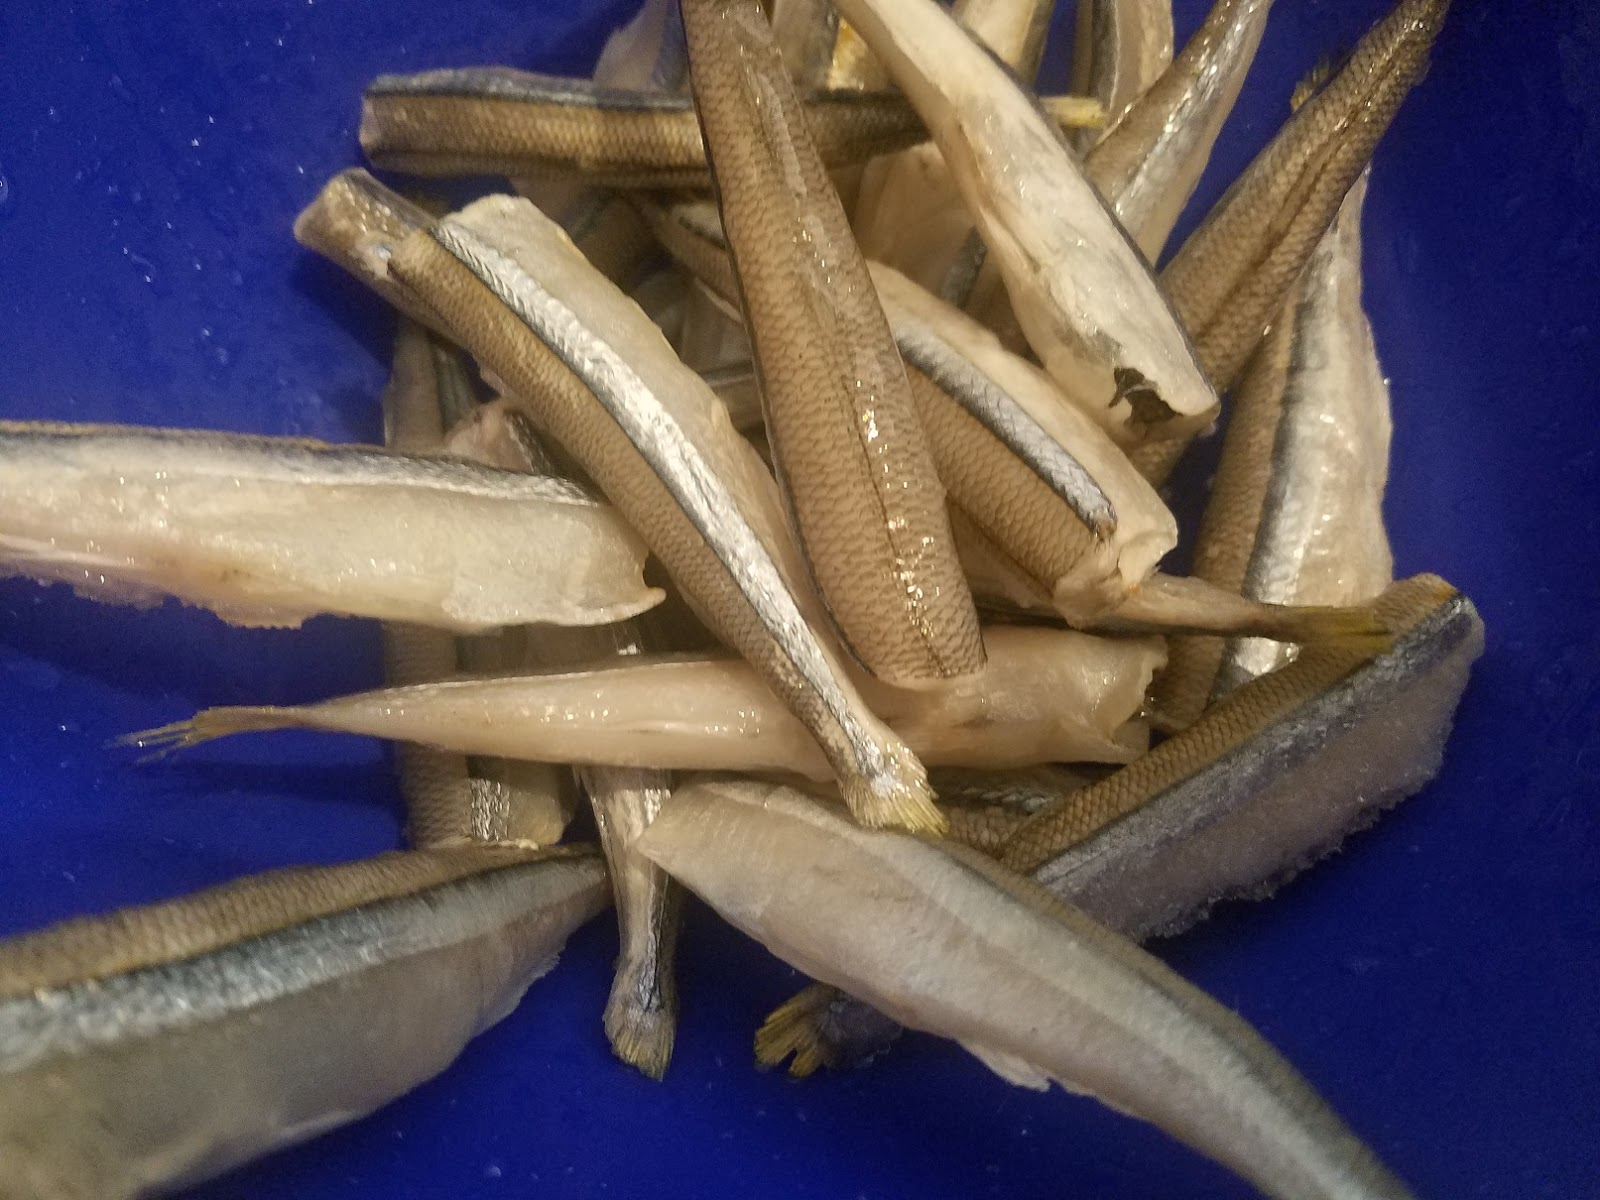 these are smelts cleaned and getting ready to be dipped in seasoned flour and then fried for Christmas Eve Pan Fried Smelts